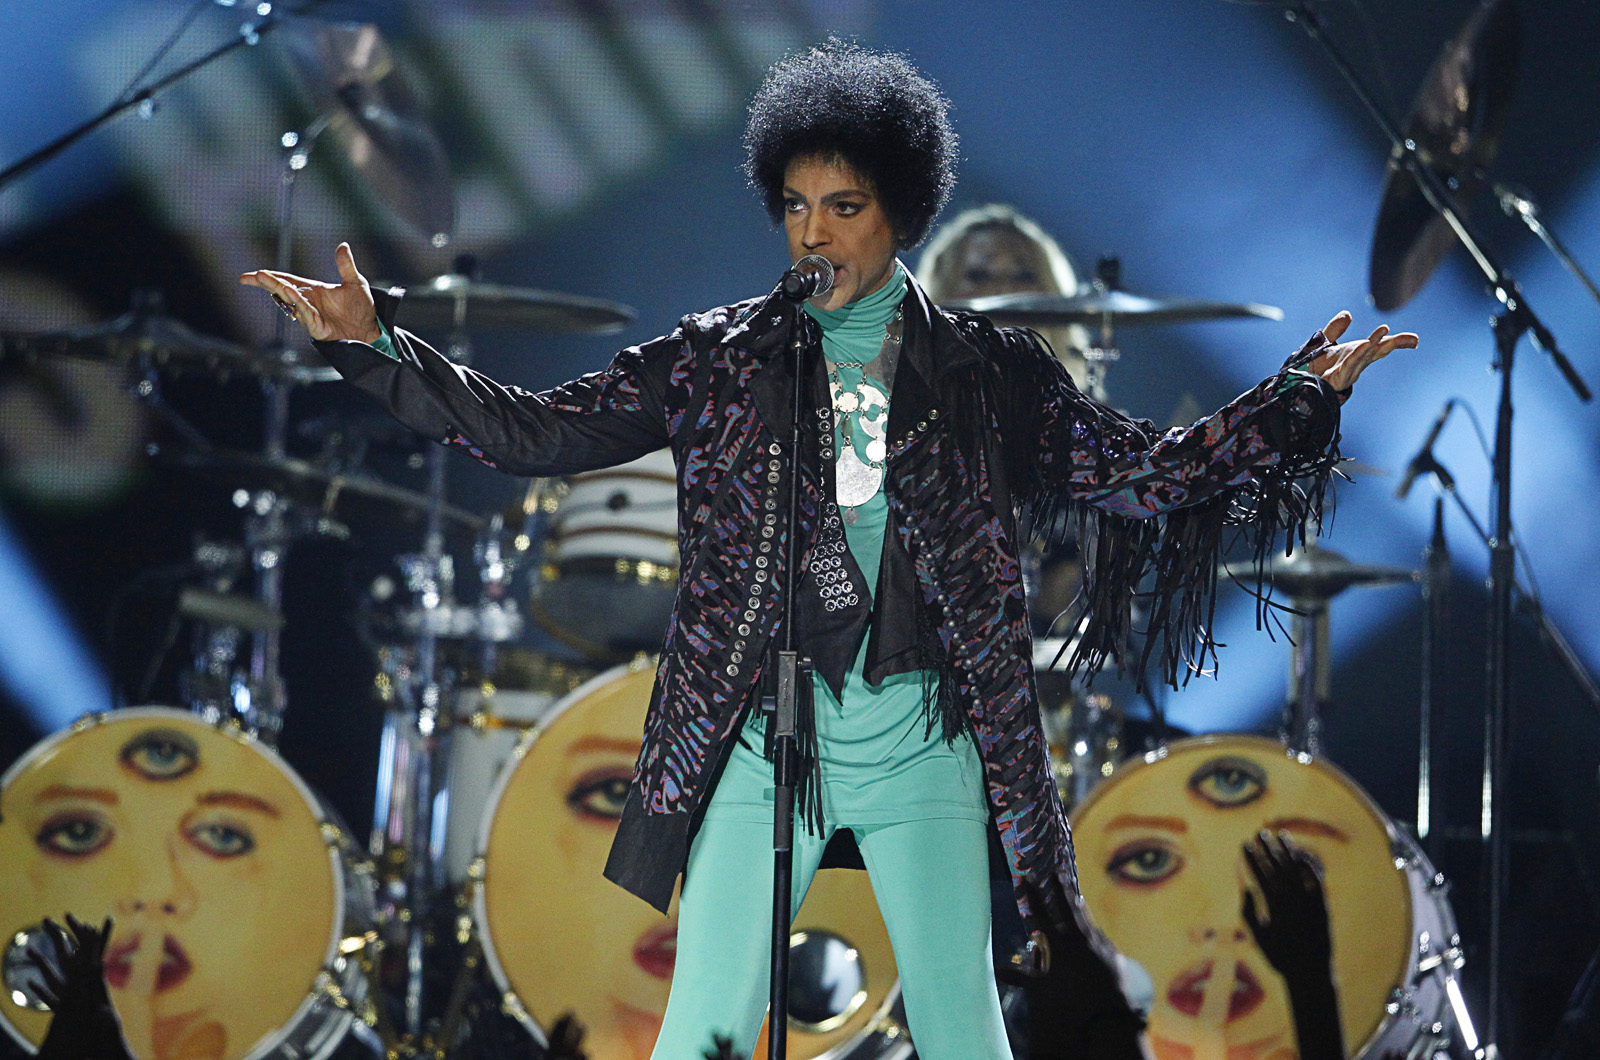 Prince performs during the 2013 Billboard Music Awards at the MGM Grand Garden Arena in 2013. Photo by Steve Marcus, Las Vegas Sun